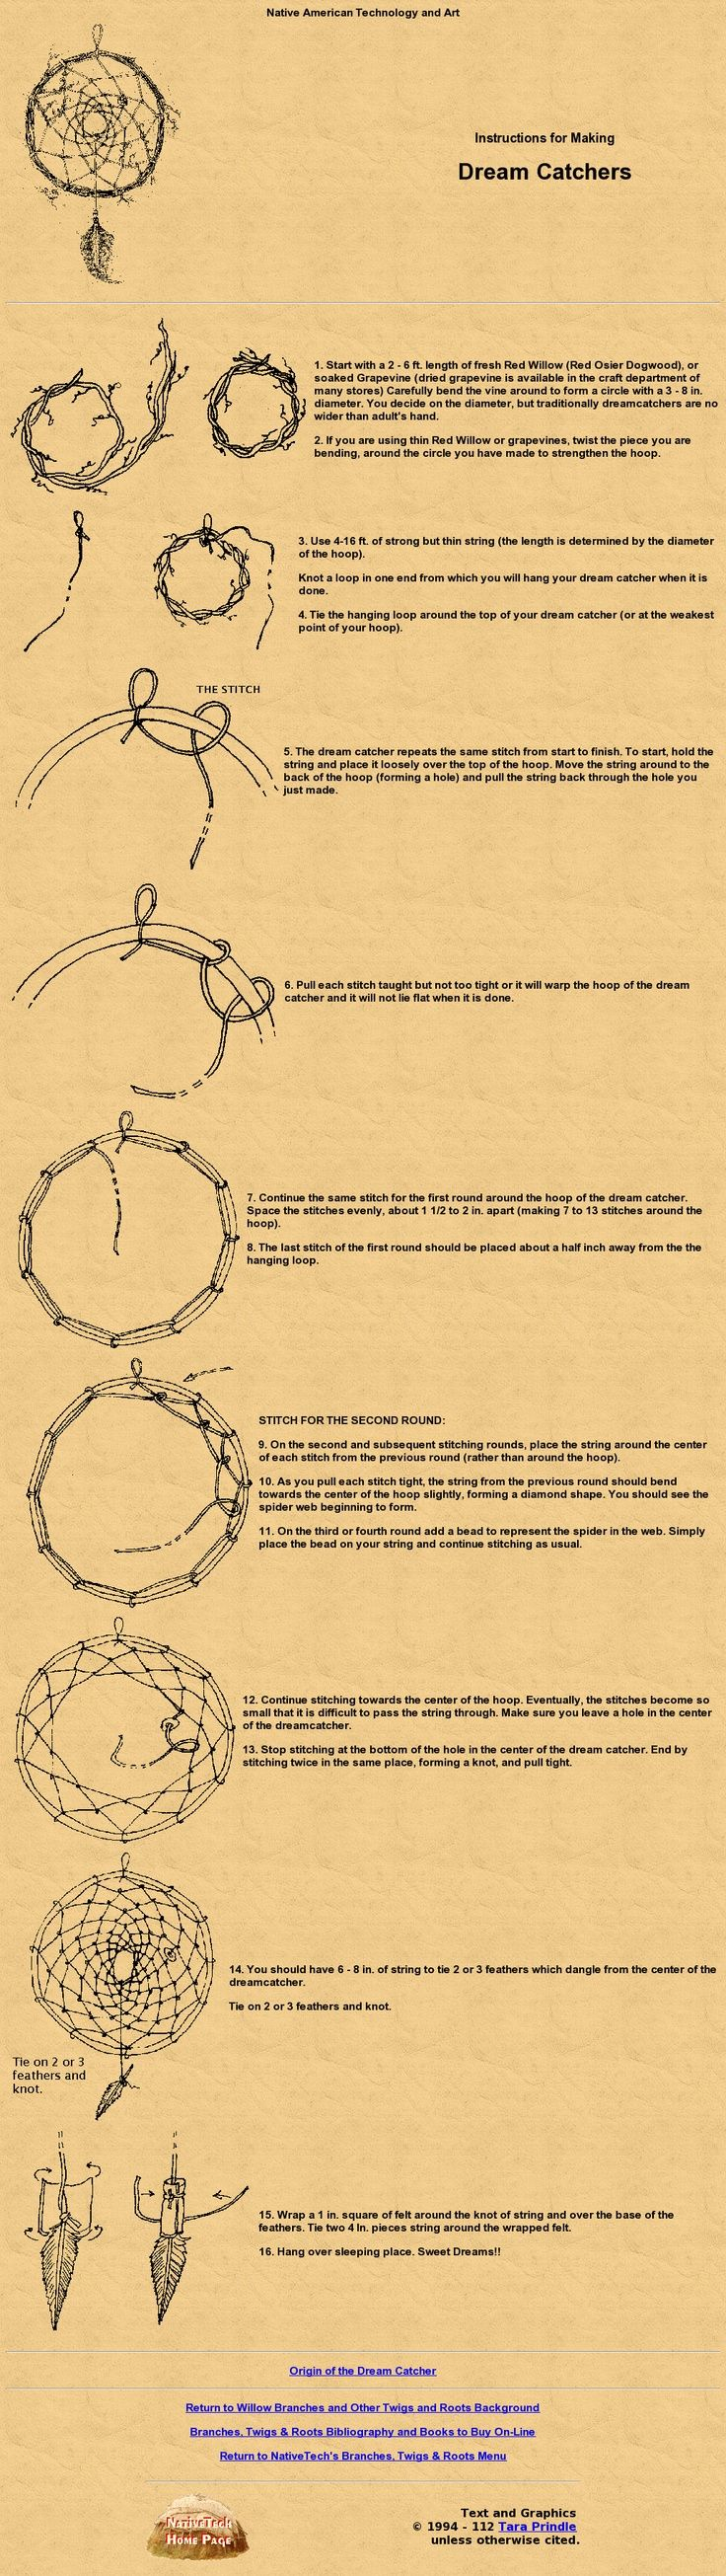 ☆ Instructions f0r Making a Dreamcatcher ☆